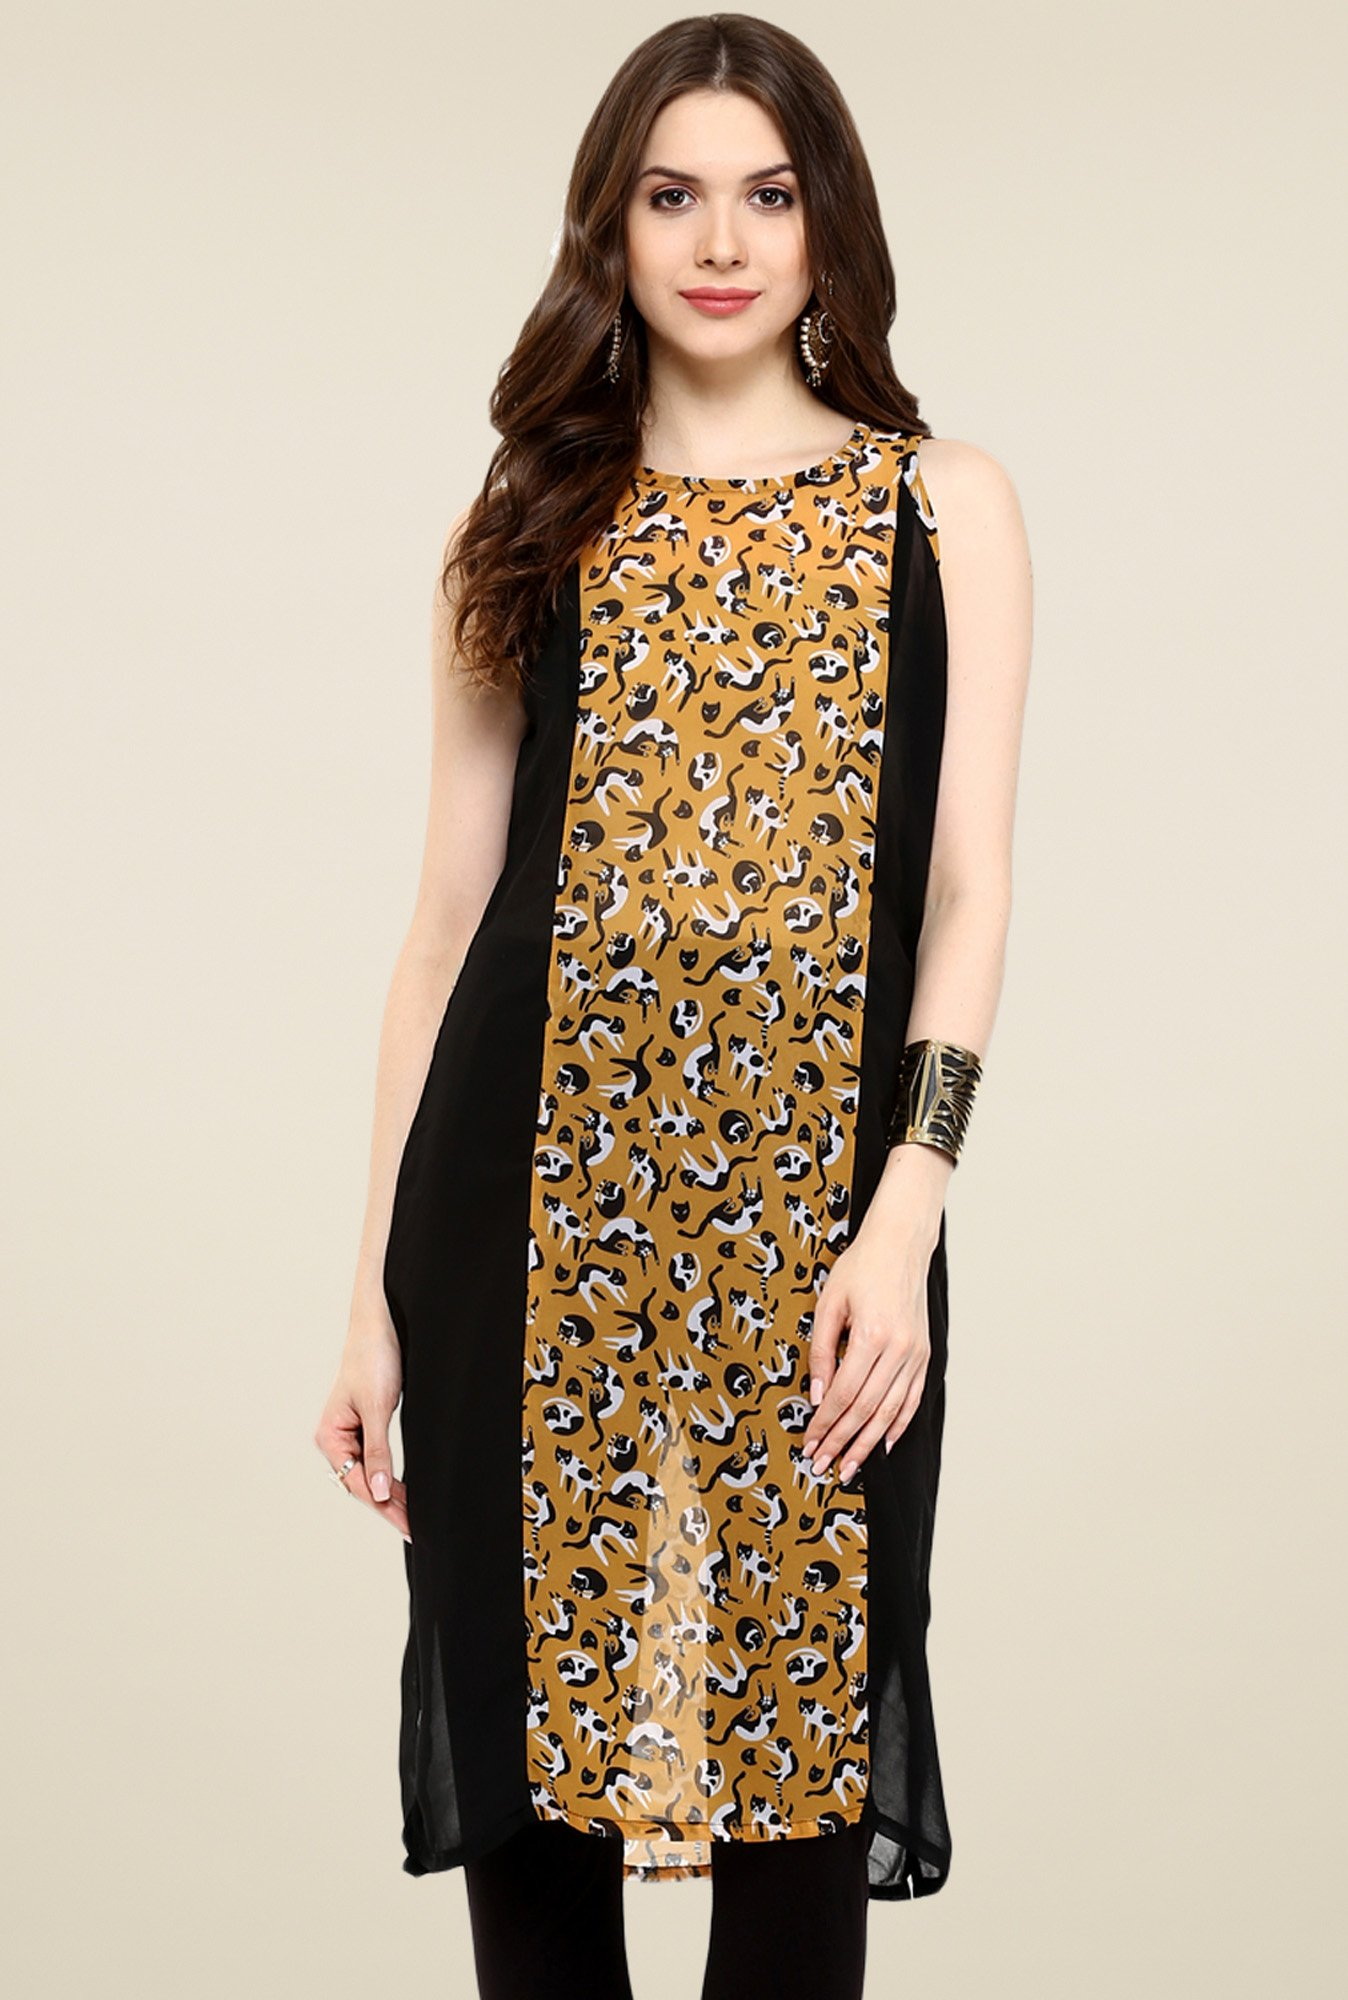 Pannkh Black & Brown Printed Regular Fit Kurti